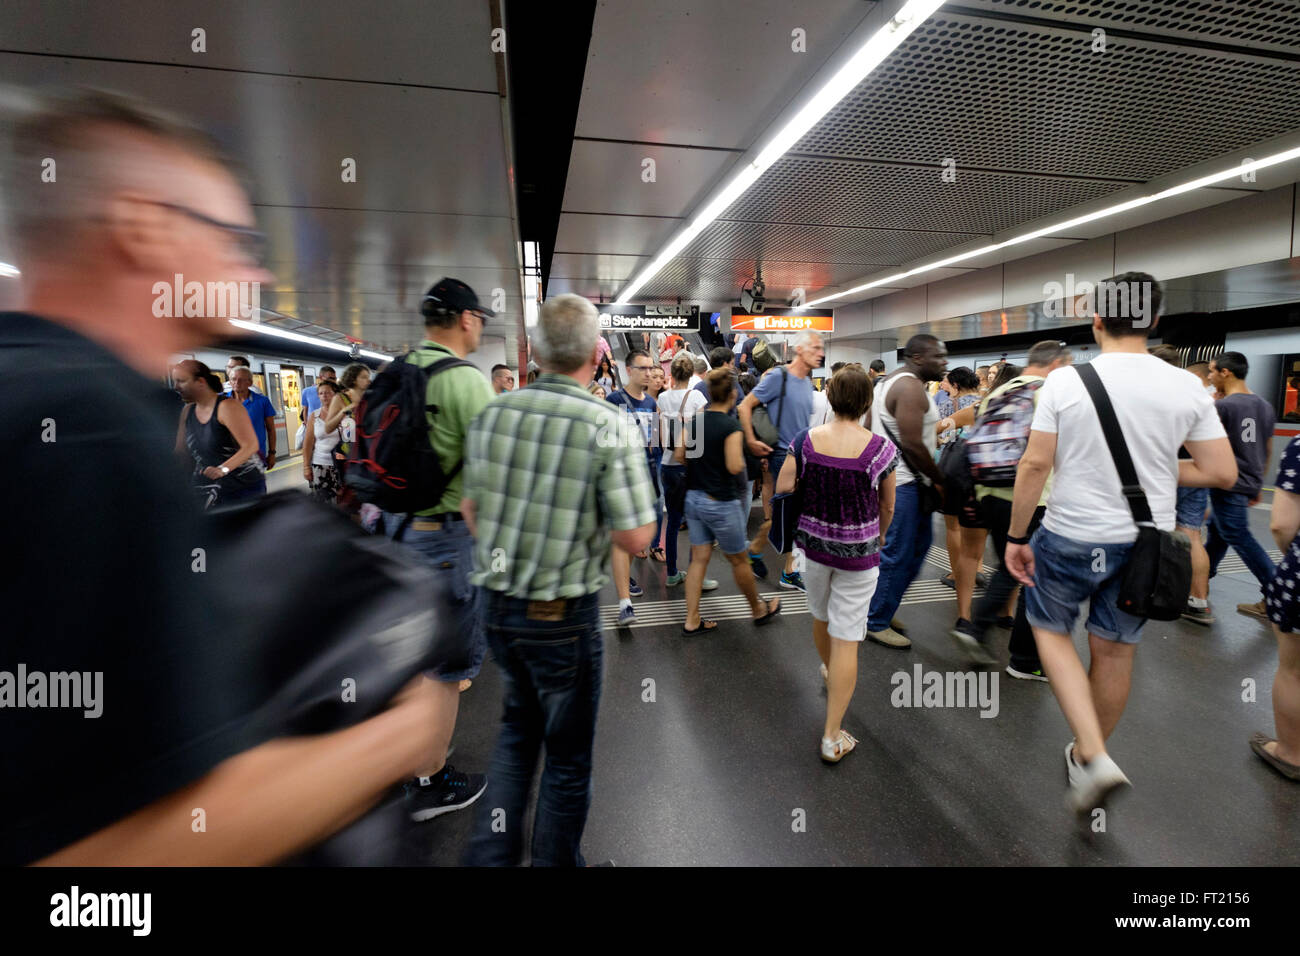 Busy Stephansplatz U-Bahn underground metro station in Vienna, Austria, Europe - Stock Image